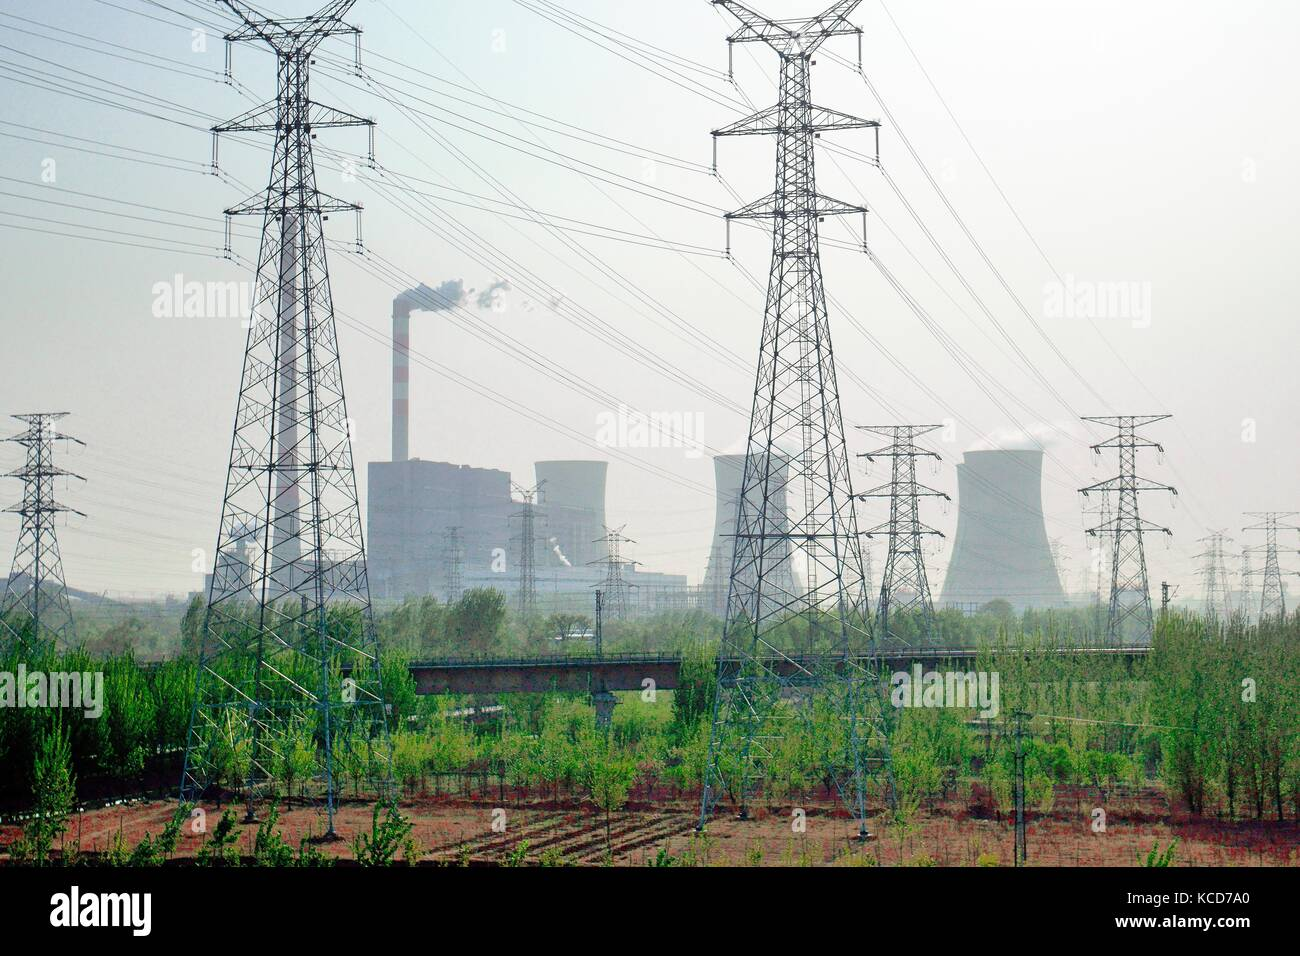 Chinese coal powered 1.3 MW electricity generating power station at Yangliuqing on west side of city of Tianjin, - Stock Image